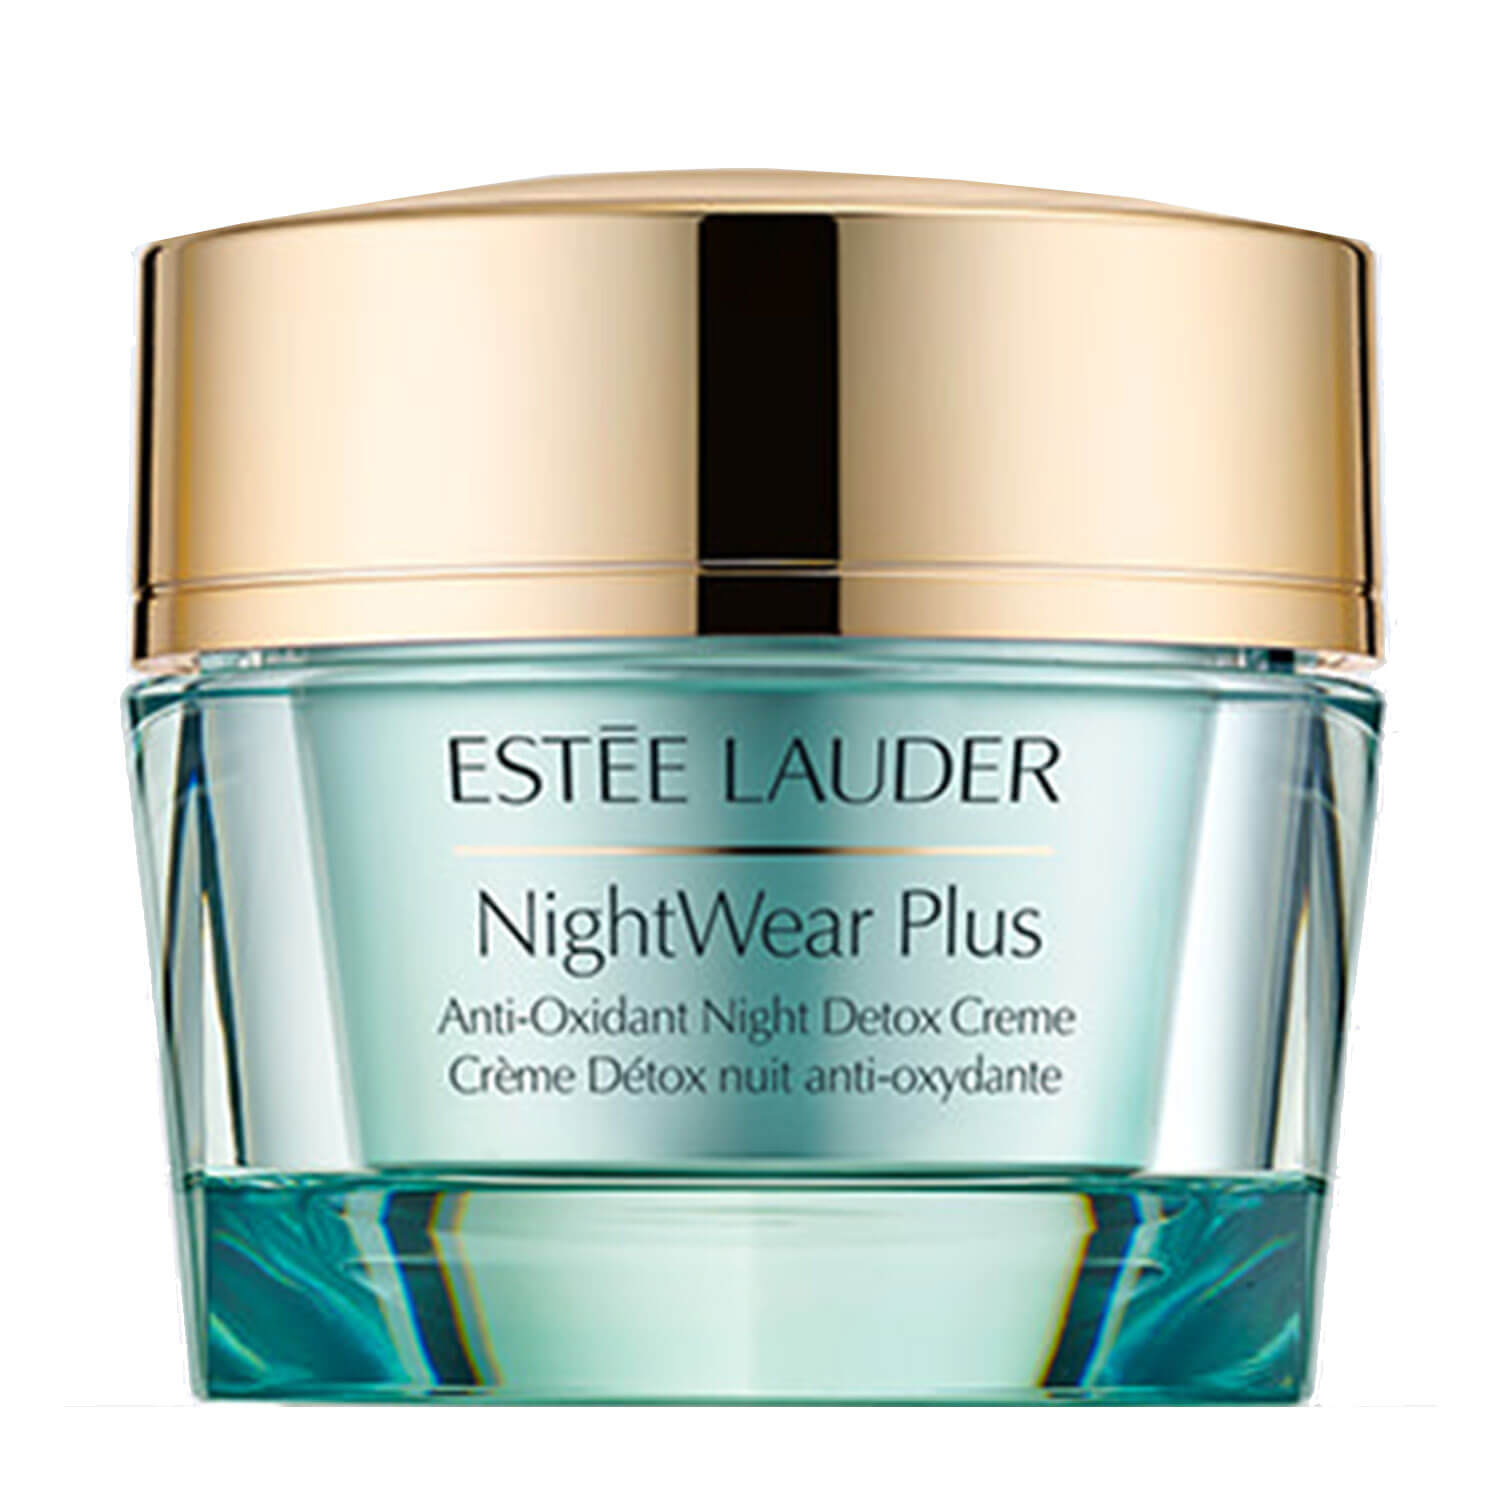 NightWear Plus - Anti-Oxidant Night Detox Creme